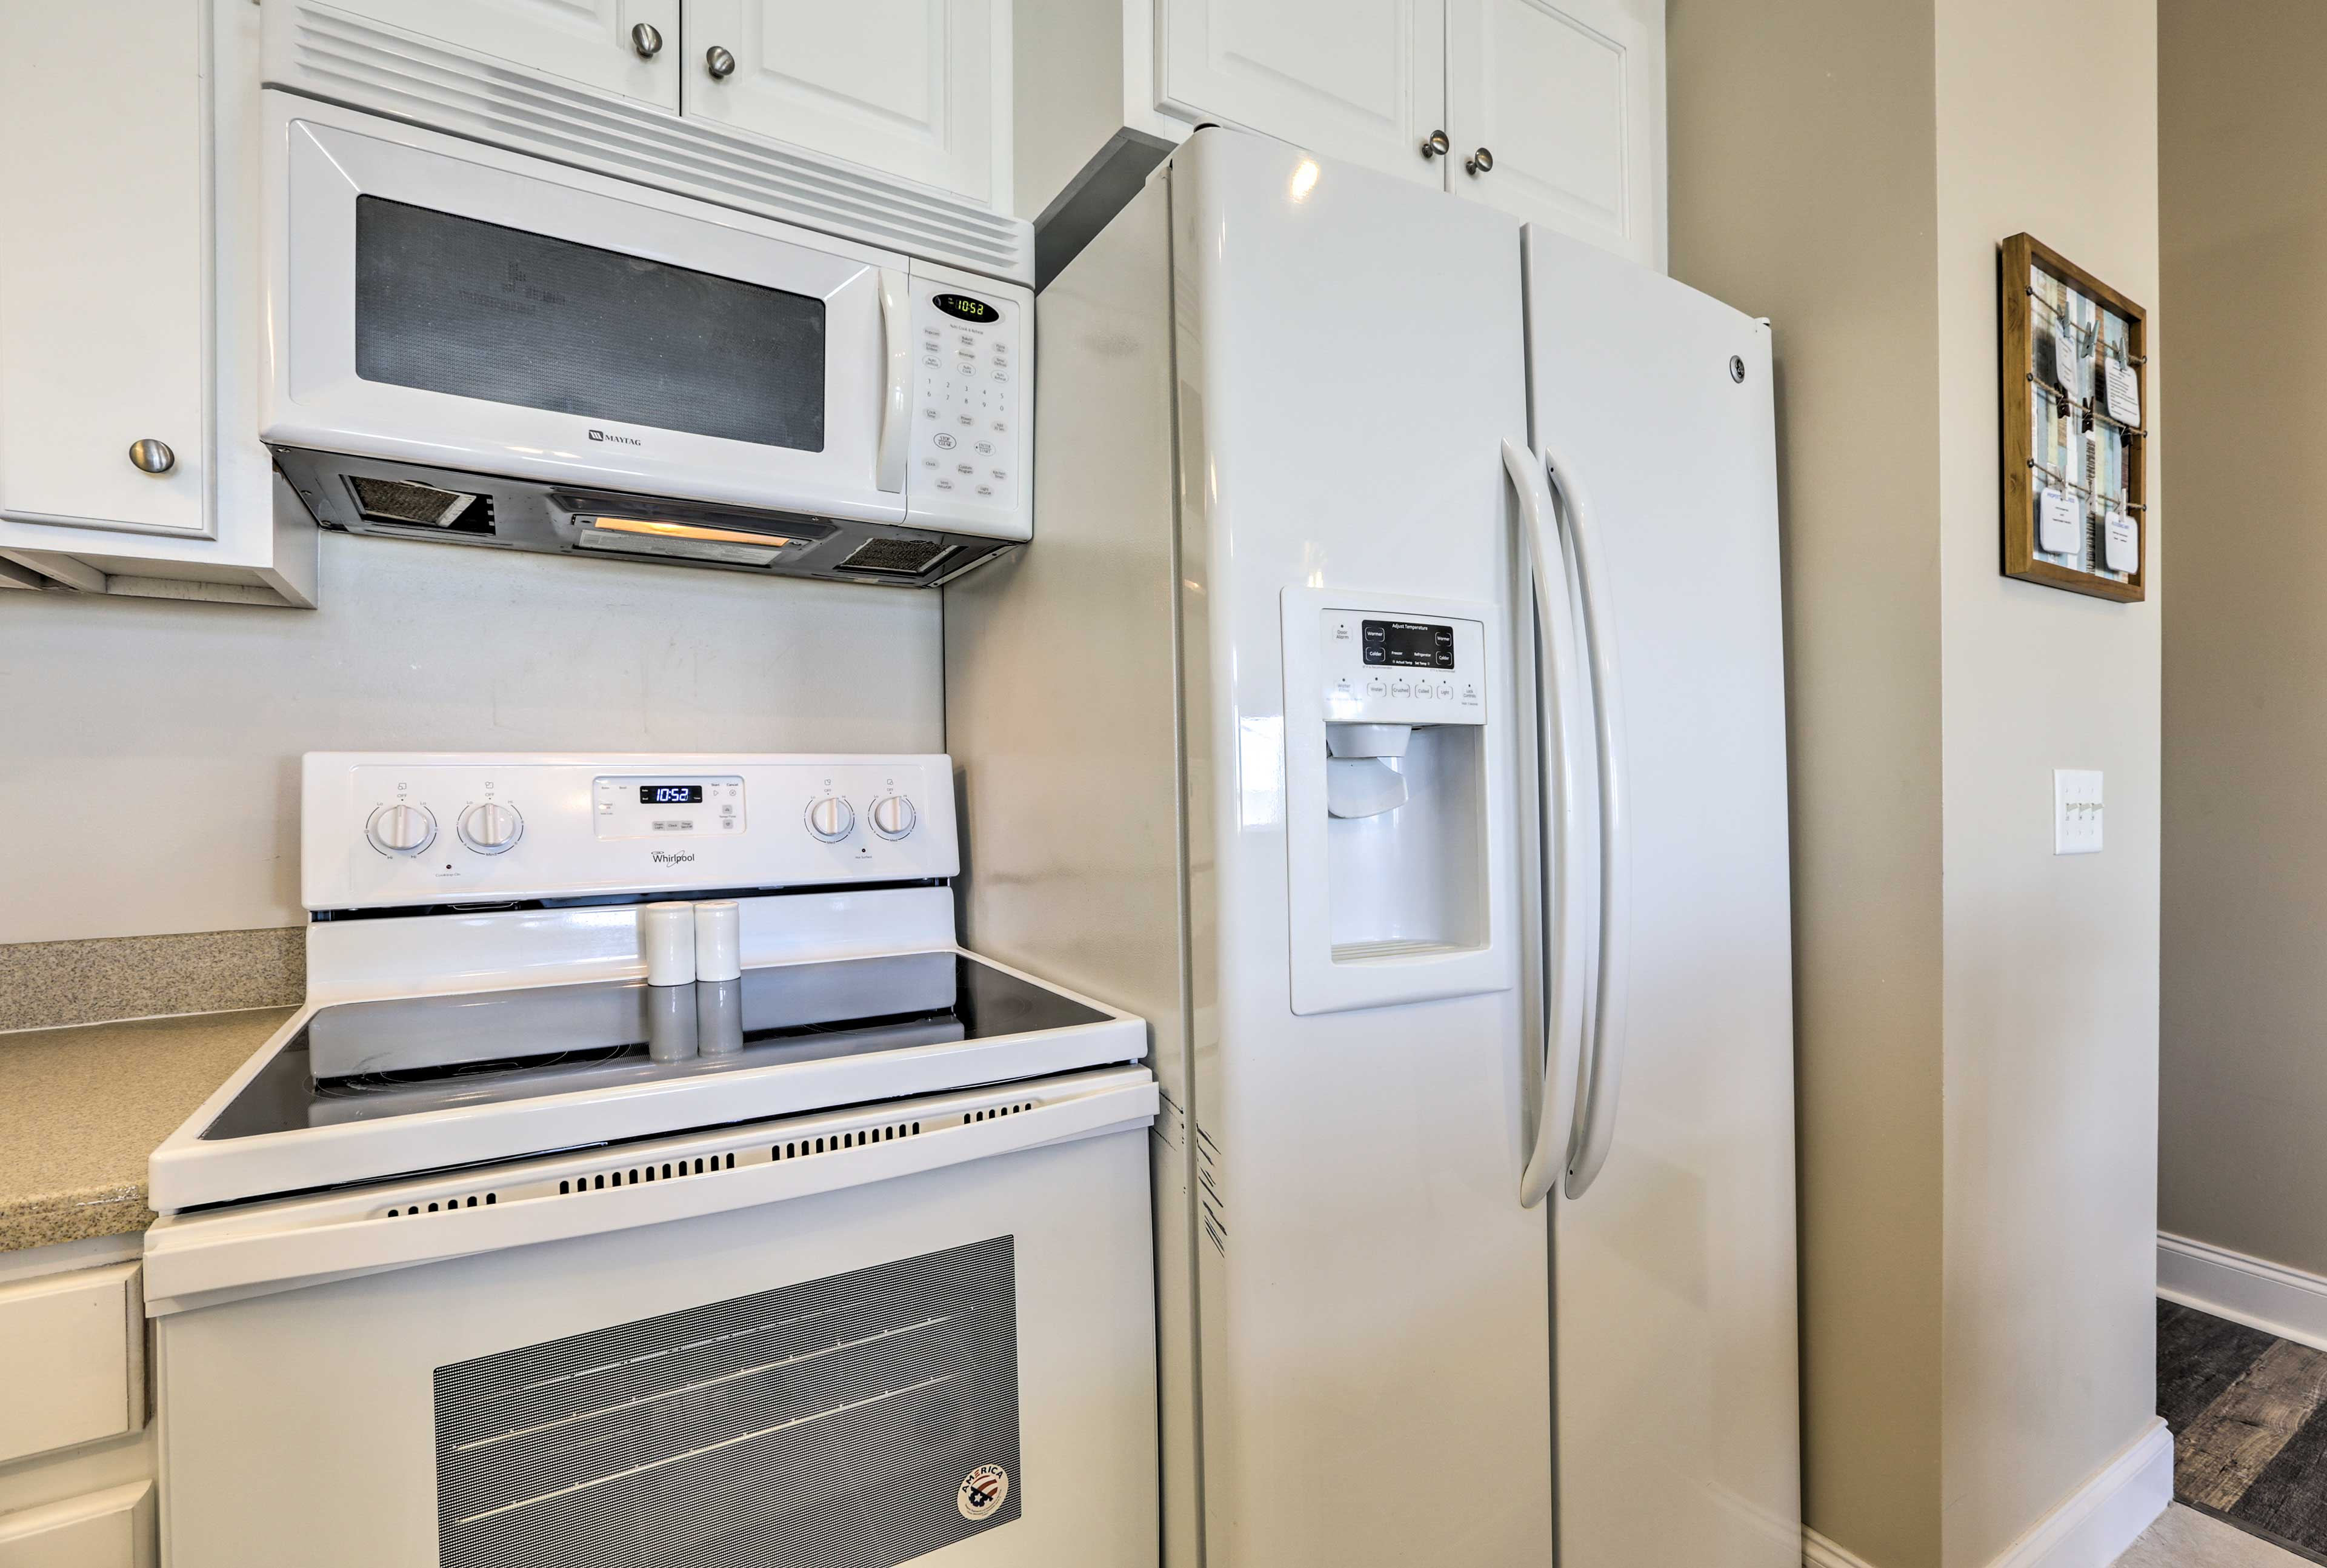 Top-of-the-line appliances make cooking for large groups a breeze.